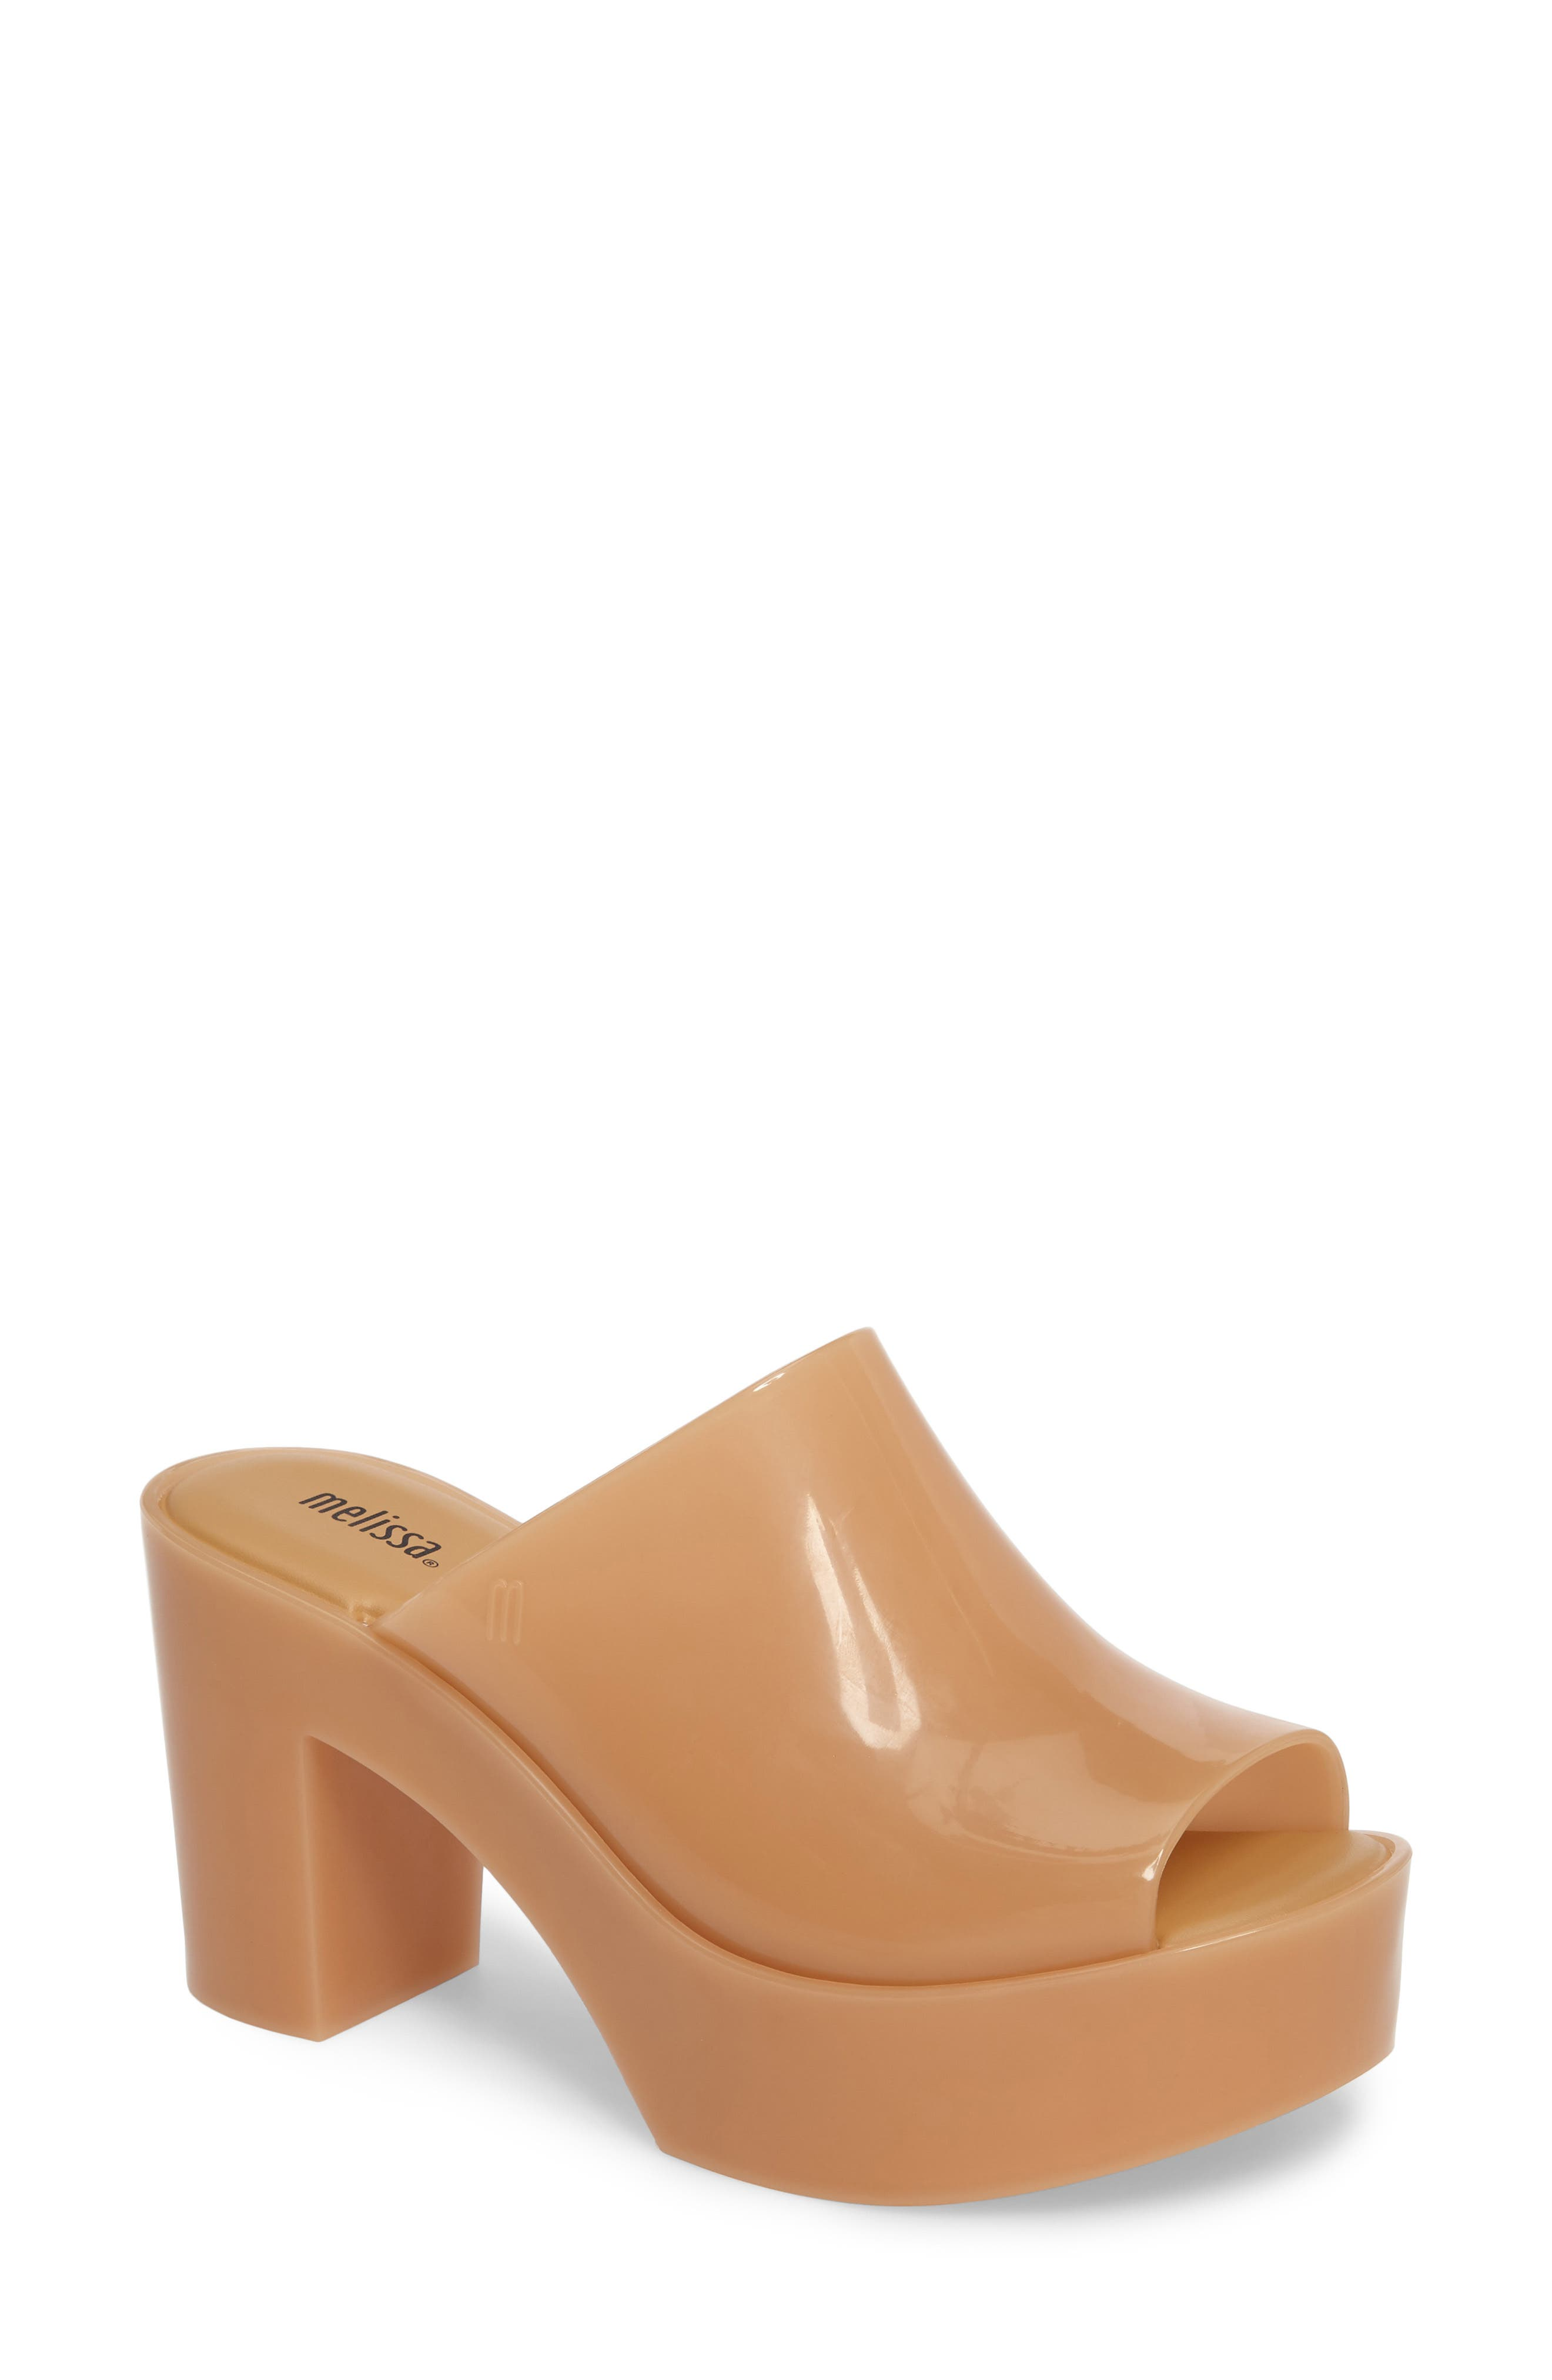 Alternate Image 1 Selected - Melissa Open Toe Platform Mule (Women)